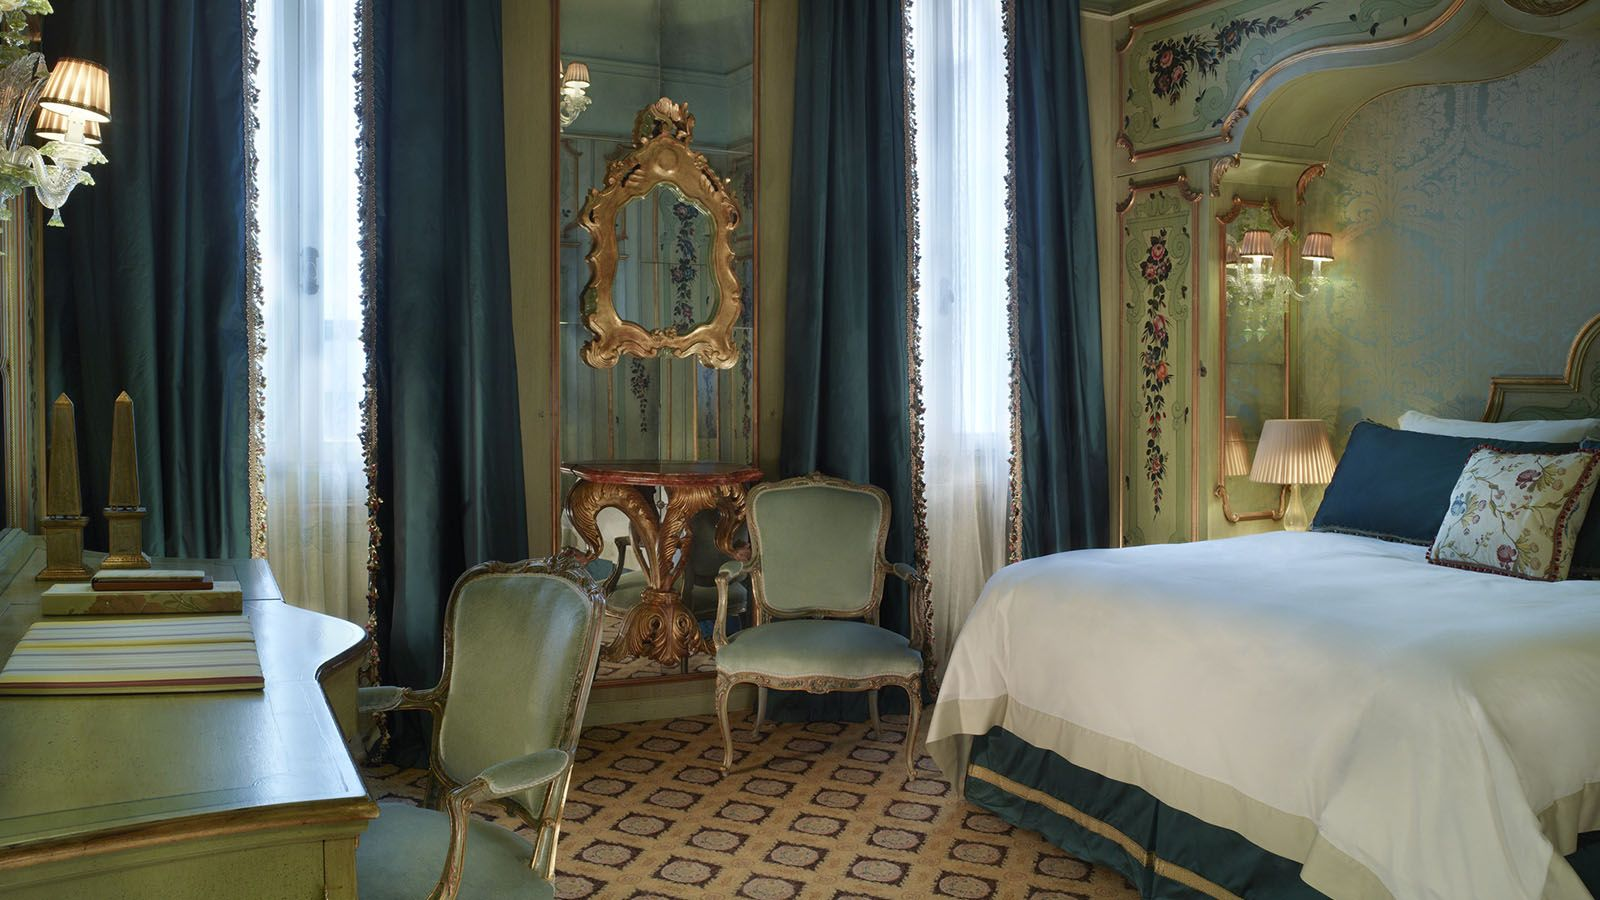 Rooms & Suites, The Gritti Palace, Venice